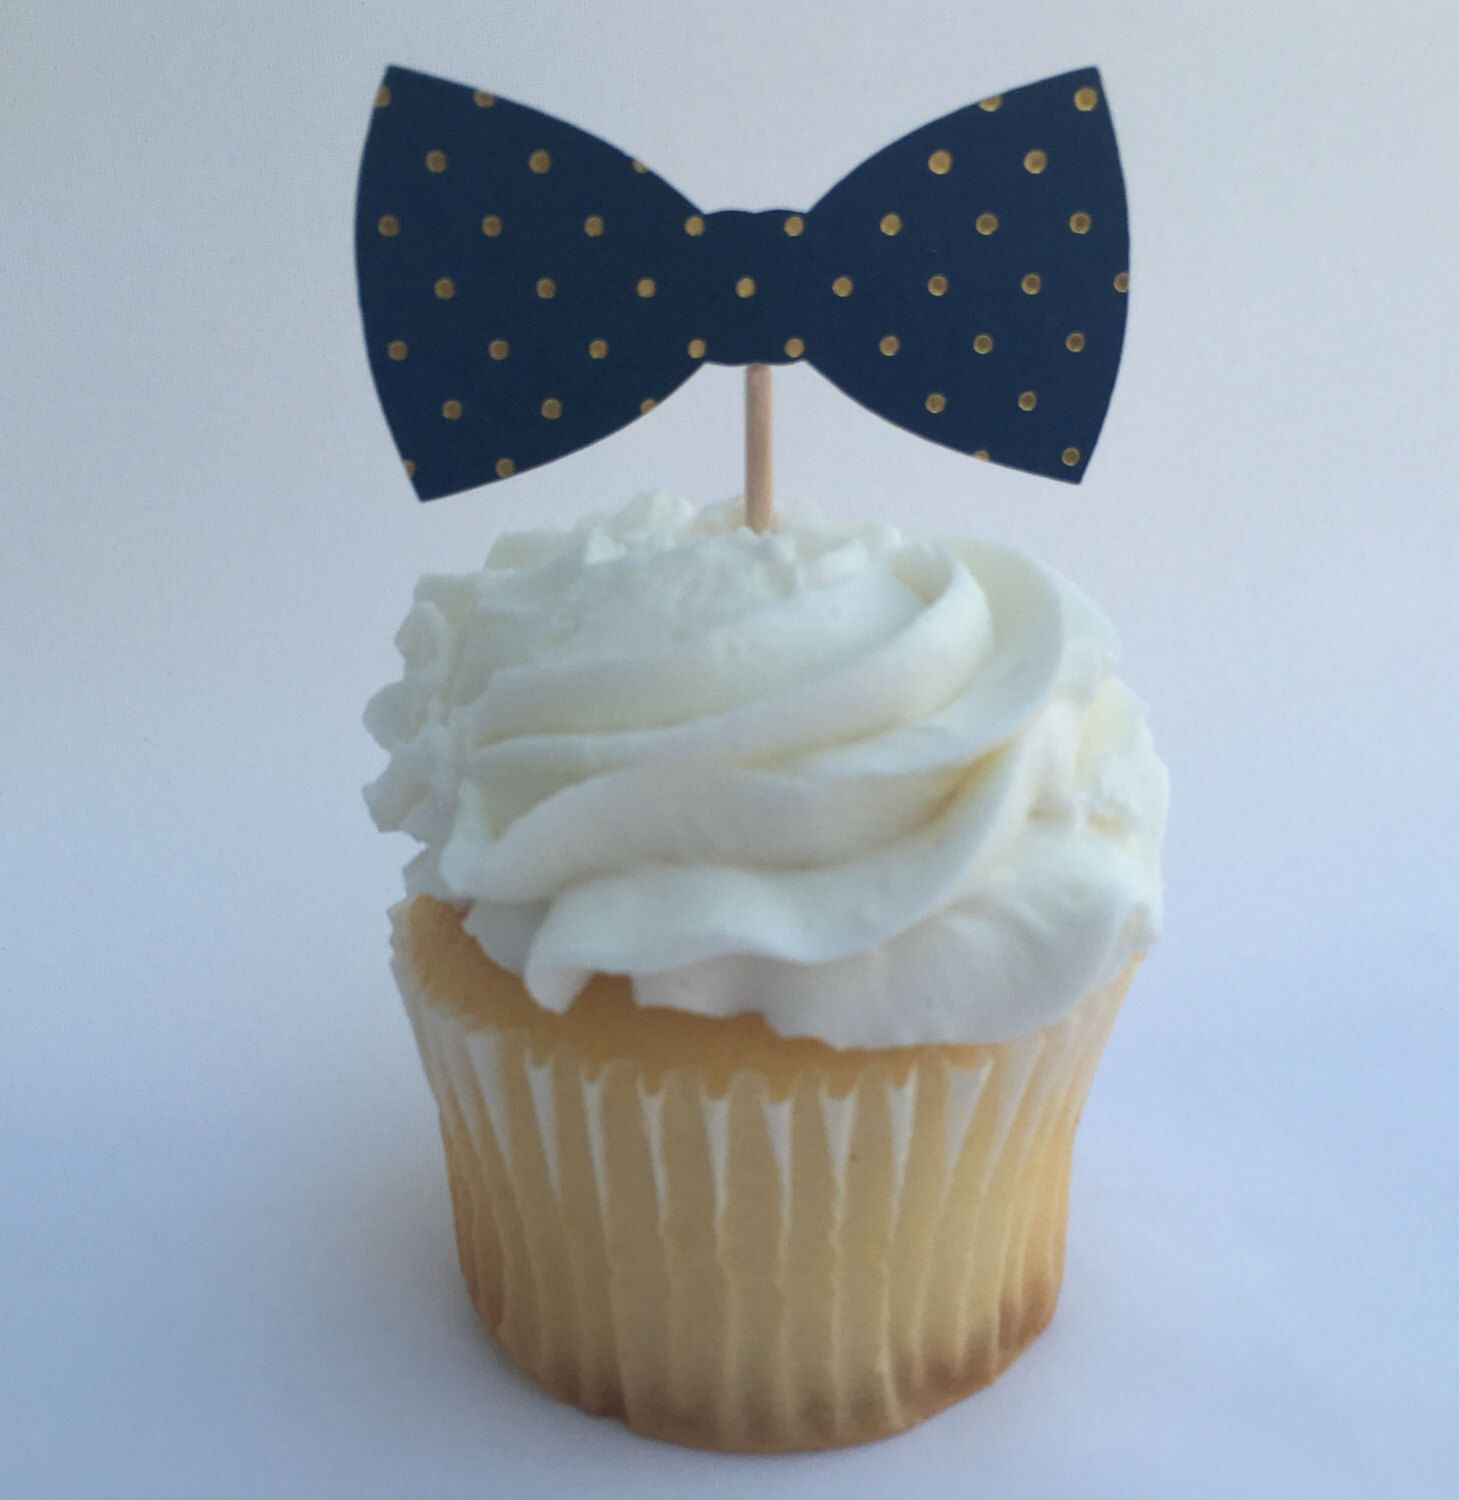 Polka Dot Bowtie Cupcake Toppers Blue and Gold Set of 12